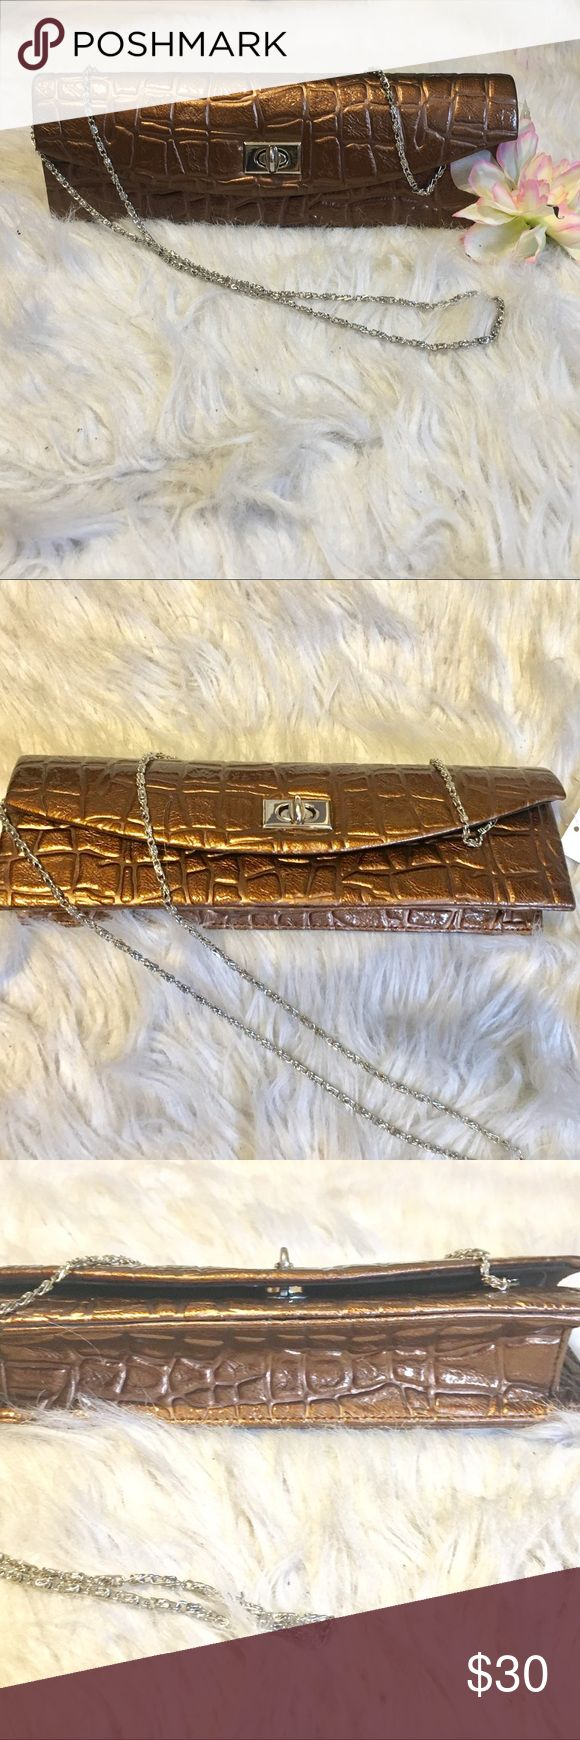 "Platinum metallic shoulder/clutch bag Gorgeous platinum metallic clutch bag. Inside small pocket. 11"" width 4"" length. Has adjustable silver chain that can come off. Bags Shoulder Bags"